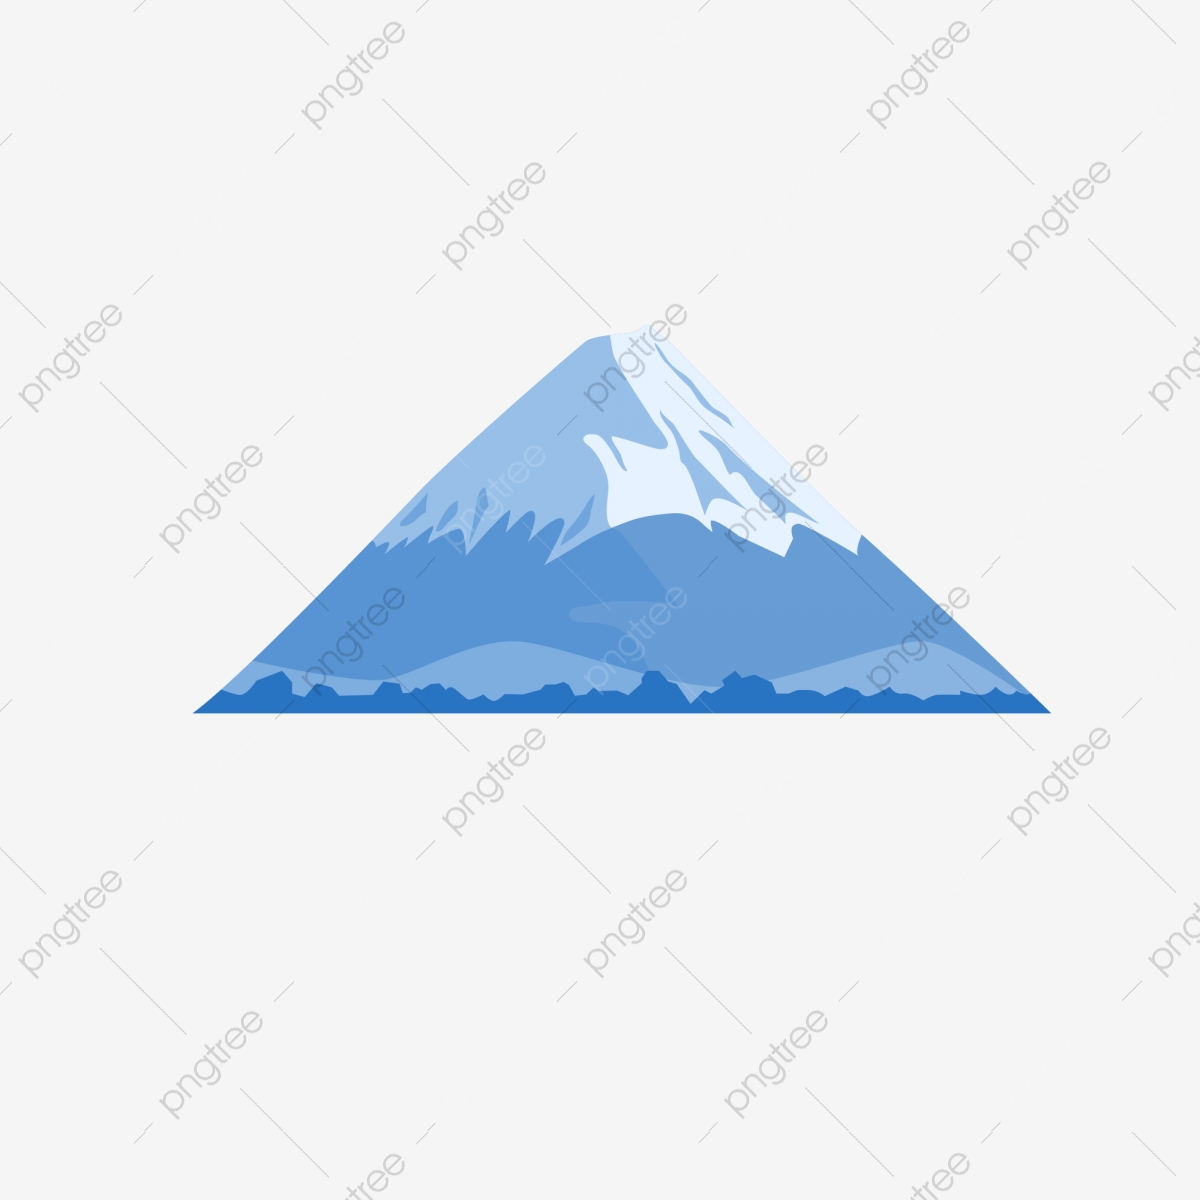 cartoon mountain png cartoon snow mountain png download, mountain peaks, hills